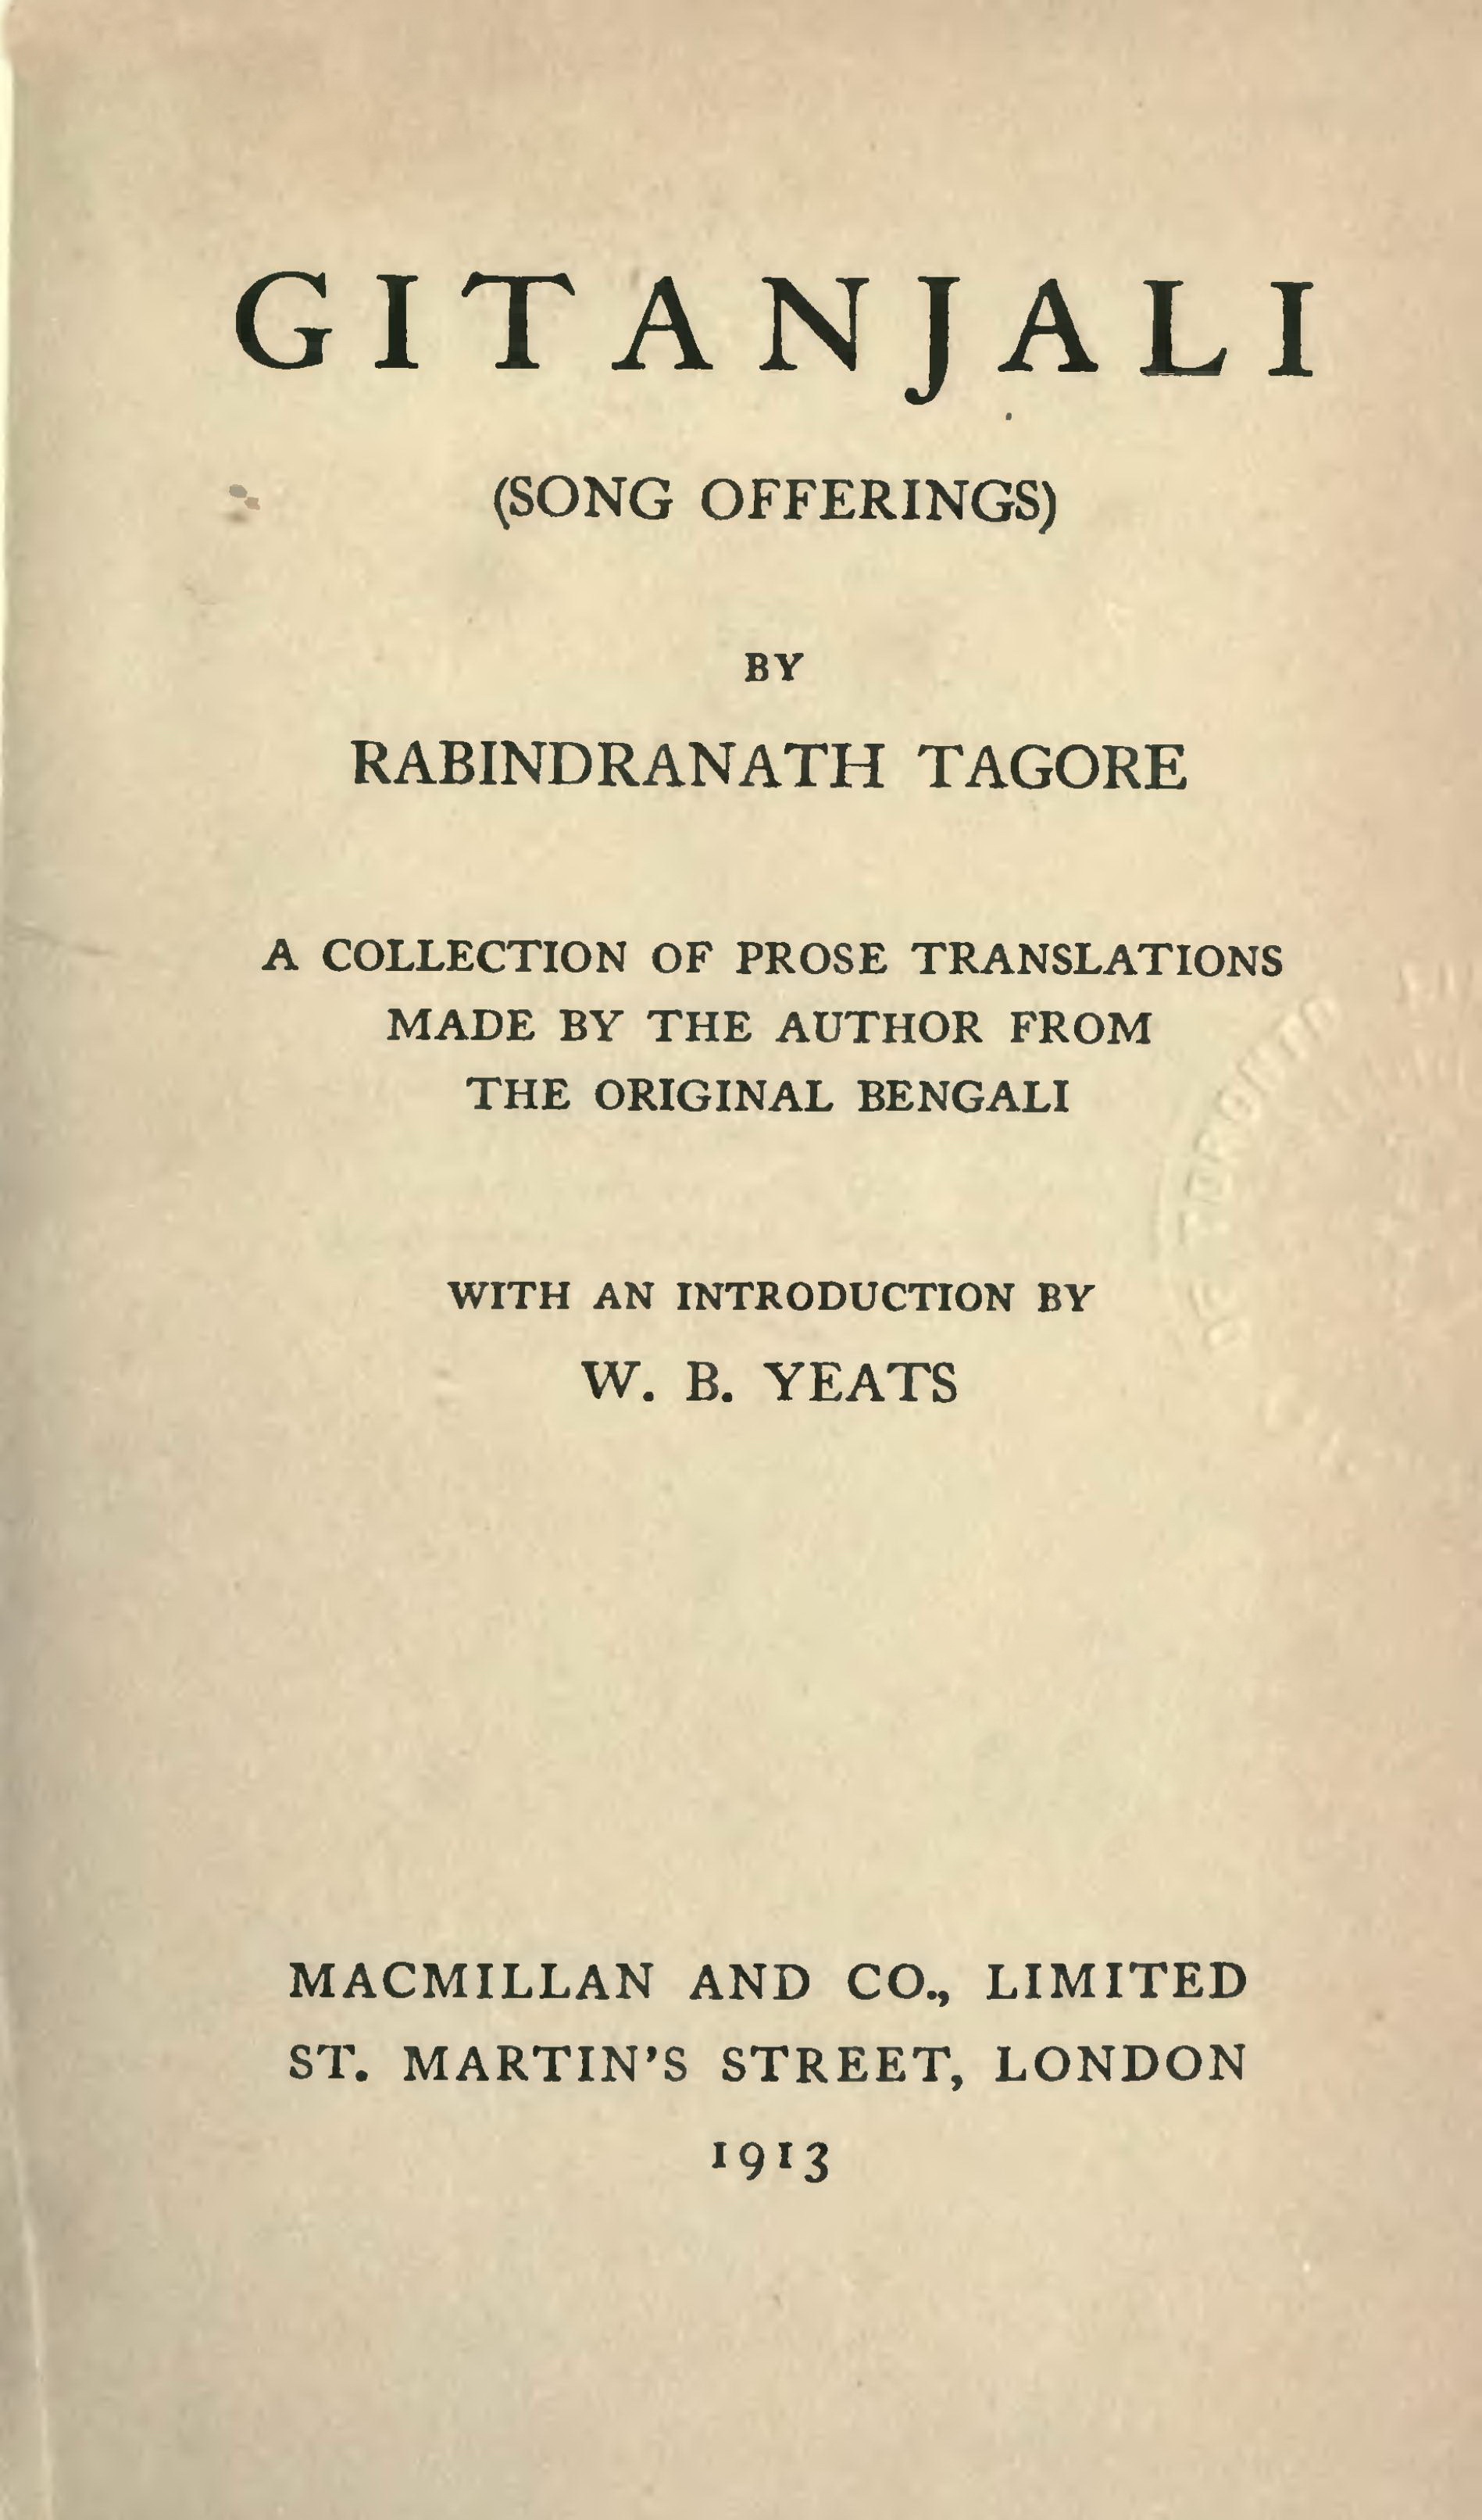 Gros-plan de la page de garde jaunie d'un livre ancien : « Gitanjali (Song offerings) by Rabindranath Tagore. A collection of prose translations made by the author from the original Bengali with an introduction by W. B. Yeats. Macmillan and Co., Limited, St. Martin's Street, London, 1913. »